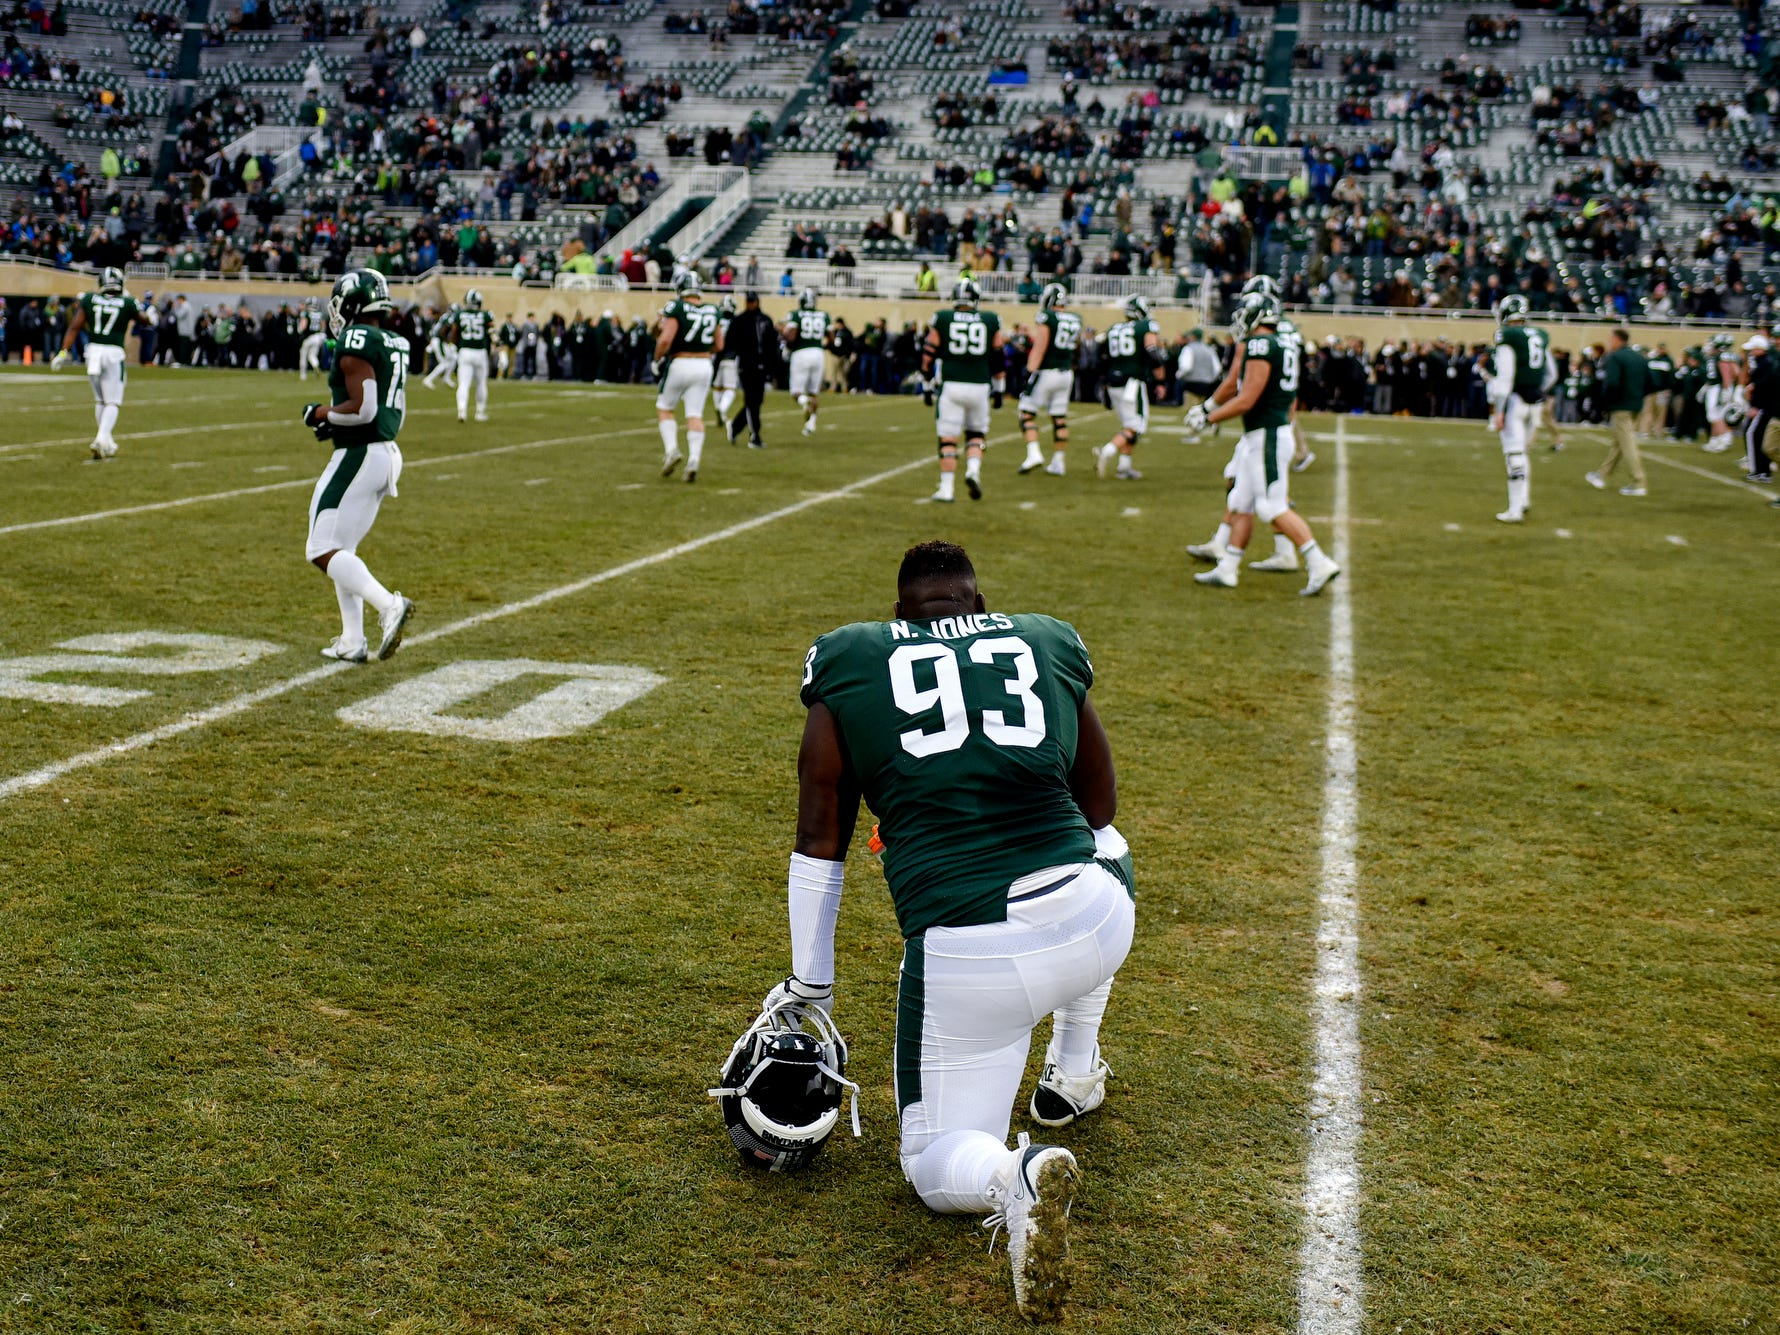 Michigan State's Naquan Jones takes a break during team warm-ups before the game against Rutgers on Saturday, Nov. 24, 2018, at Spartan Stadium in East Lansing.